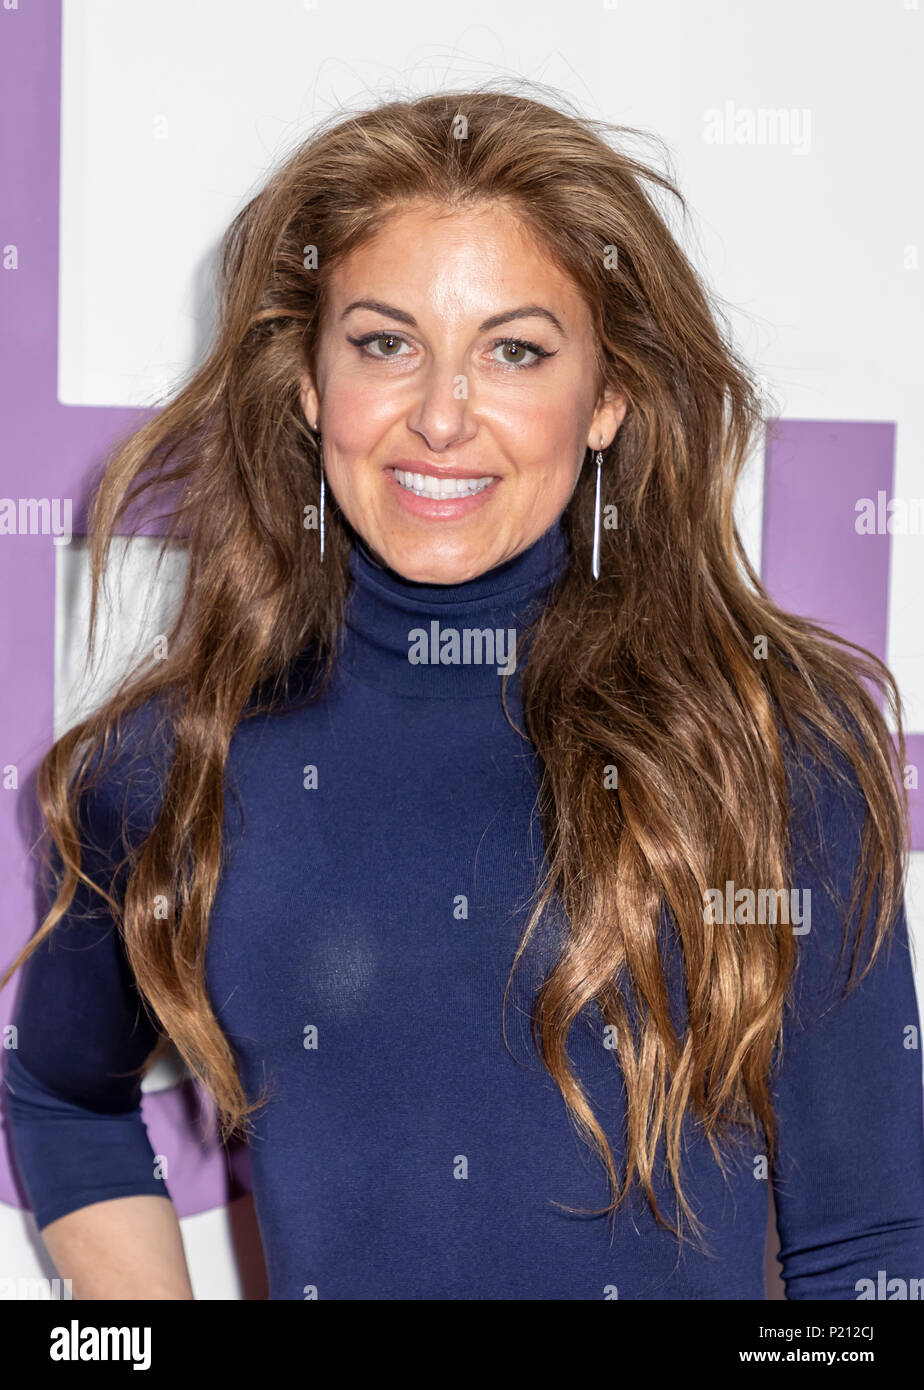 New York, NY, USA - June 12, 2018: Dylan Lauren attends the New York special screening of the Netflix film 'Set It Up' at AMC Loews Lincoln Square Credit: Sam Aronov/Alamy Live News - Stock Image